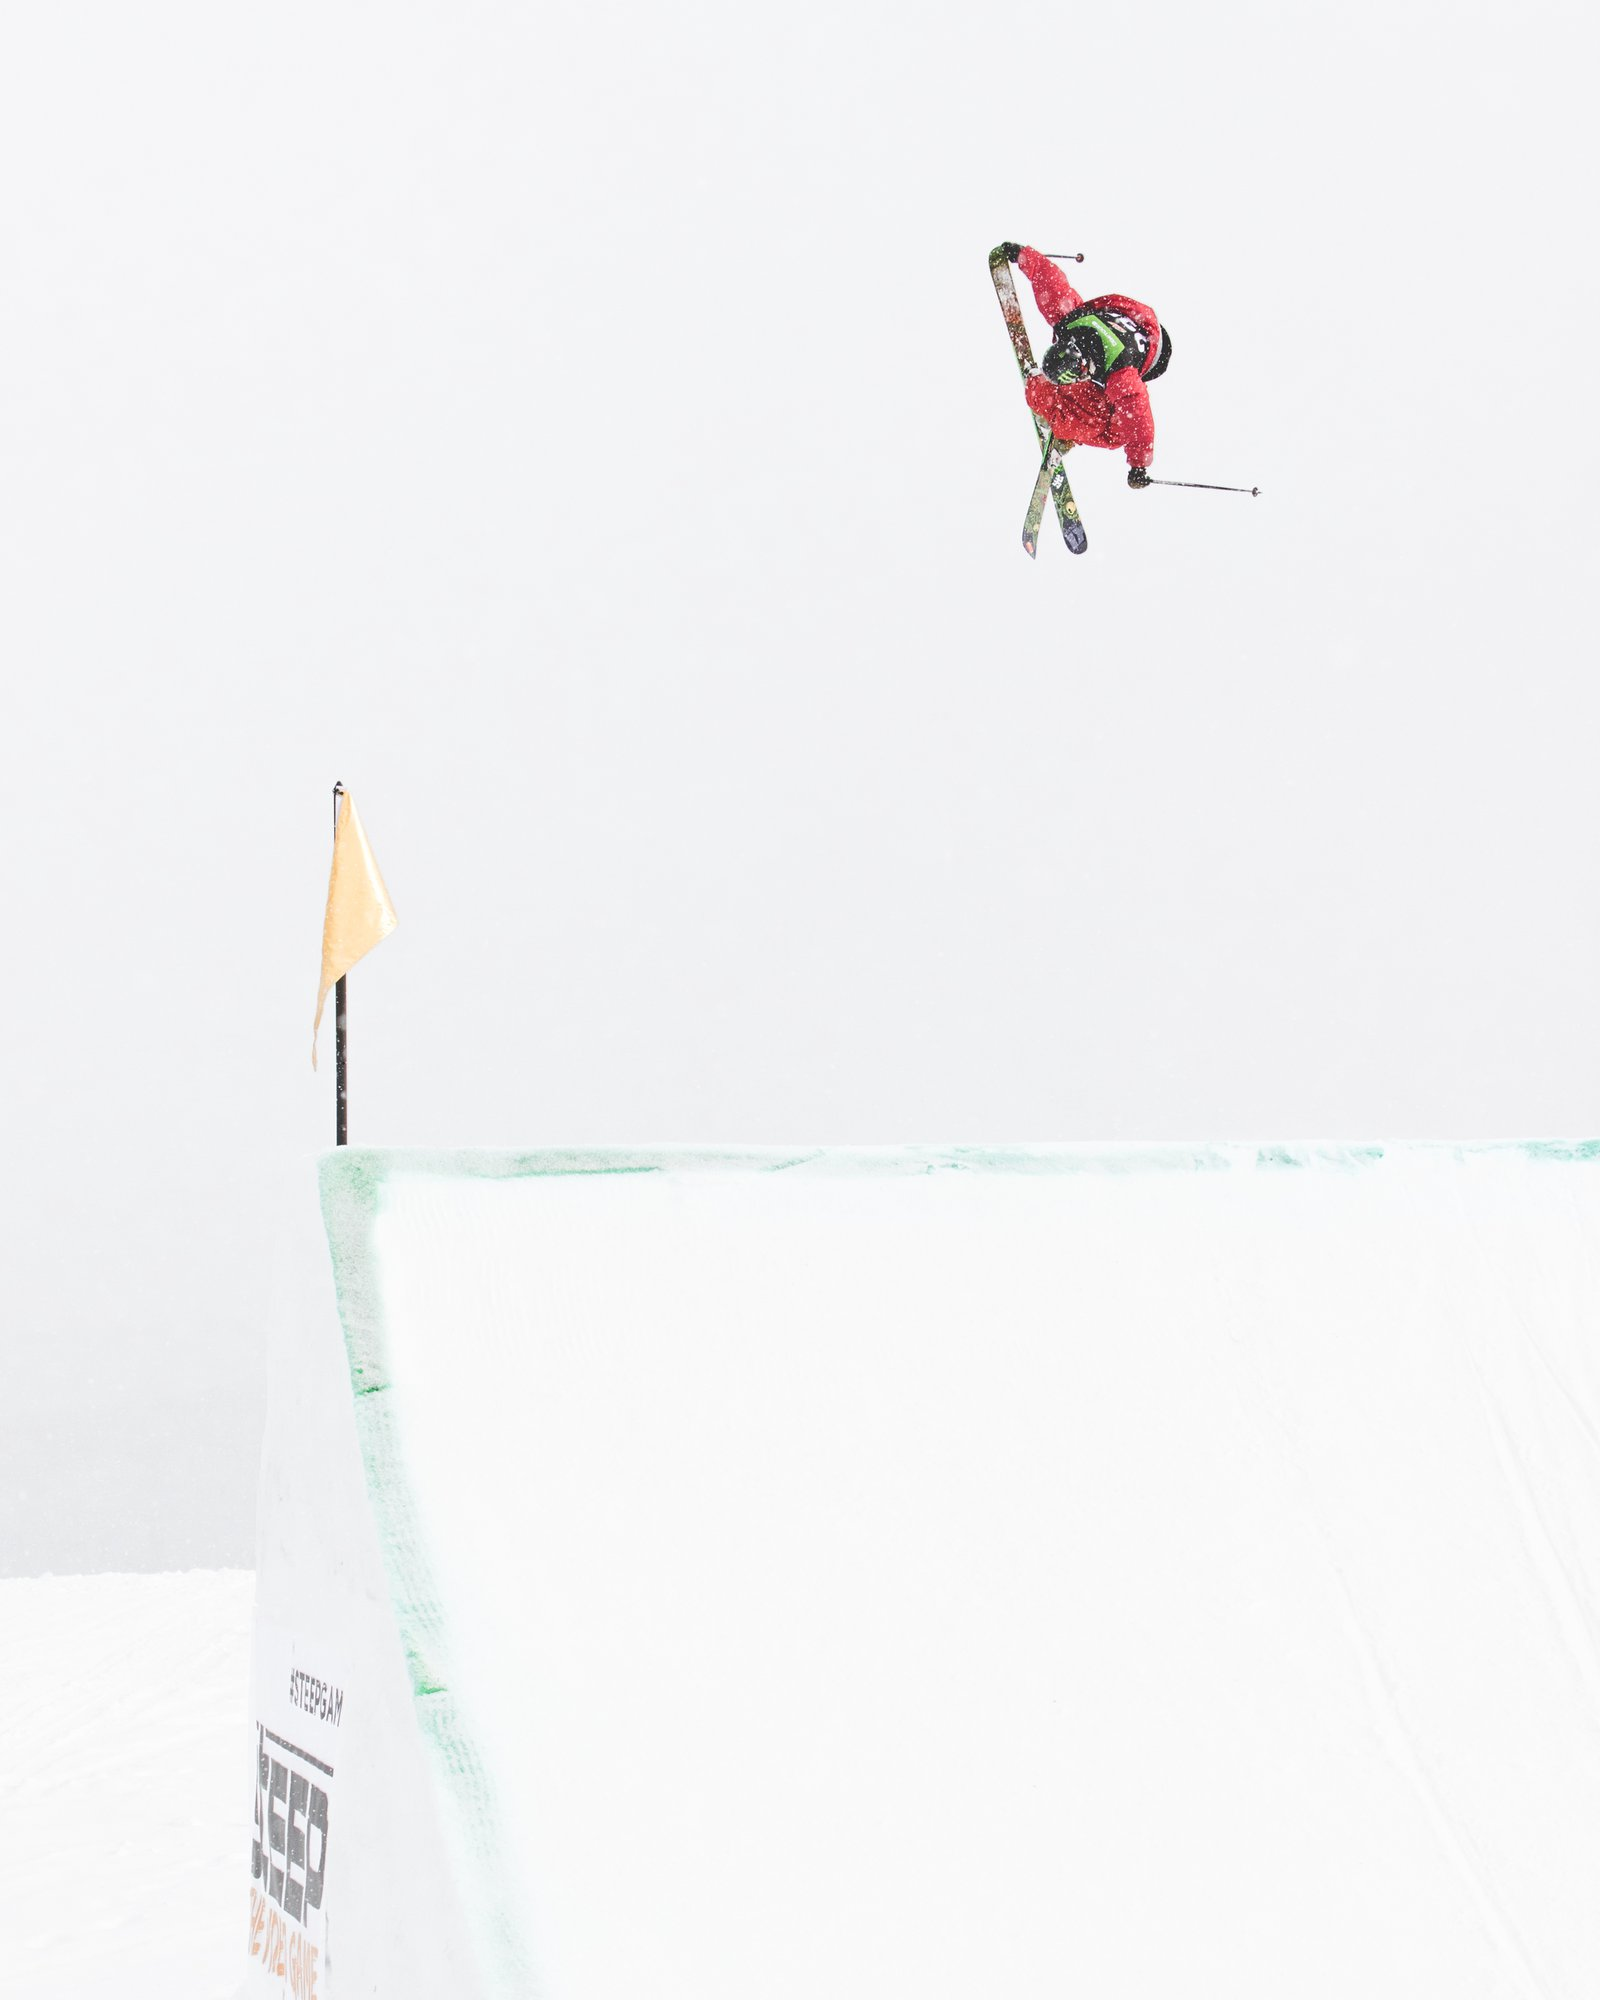 Edollo // Dew Tour